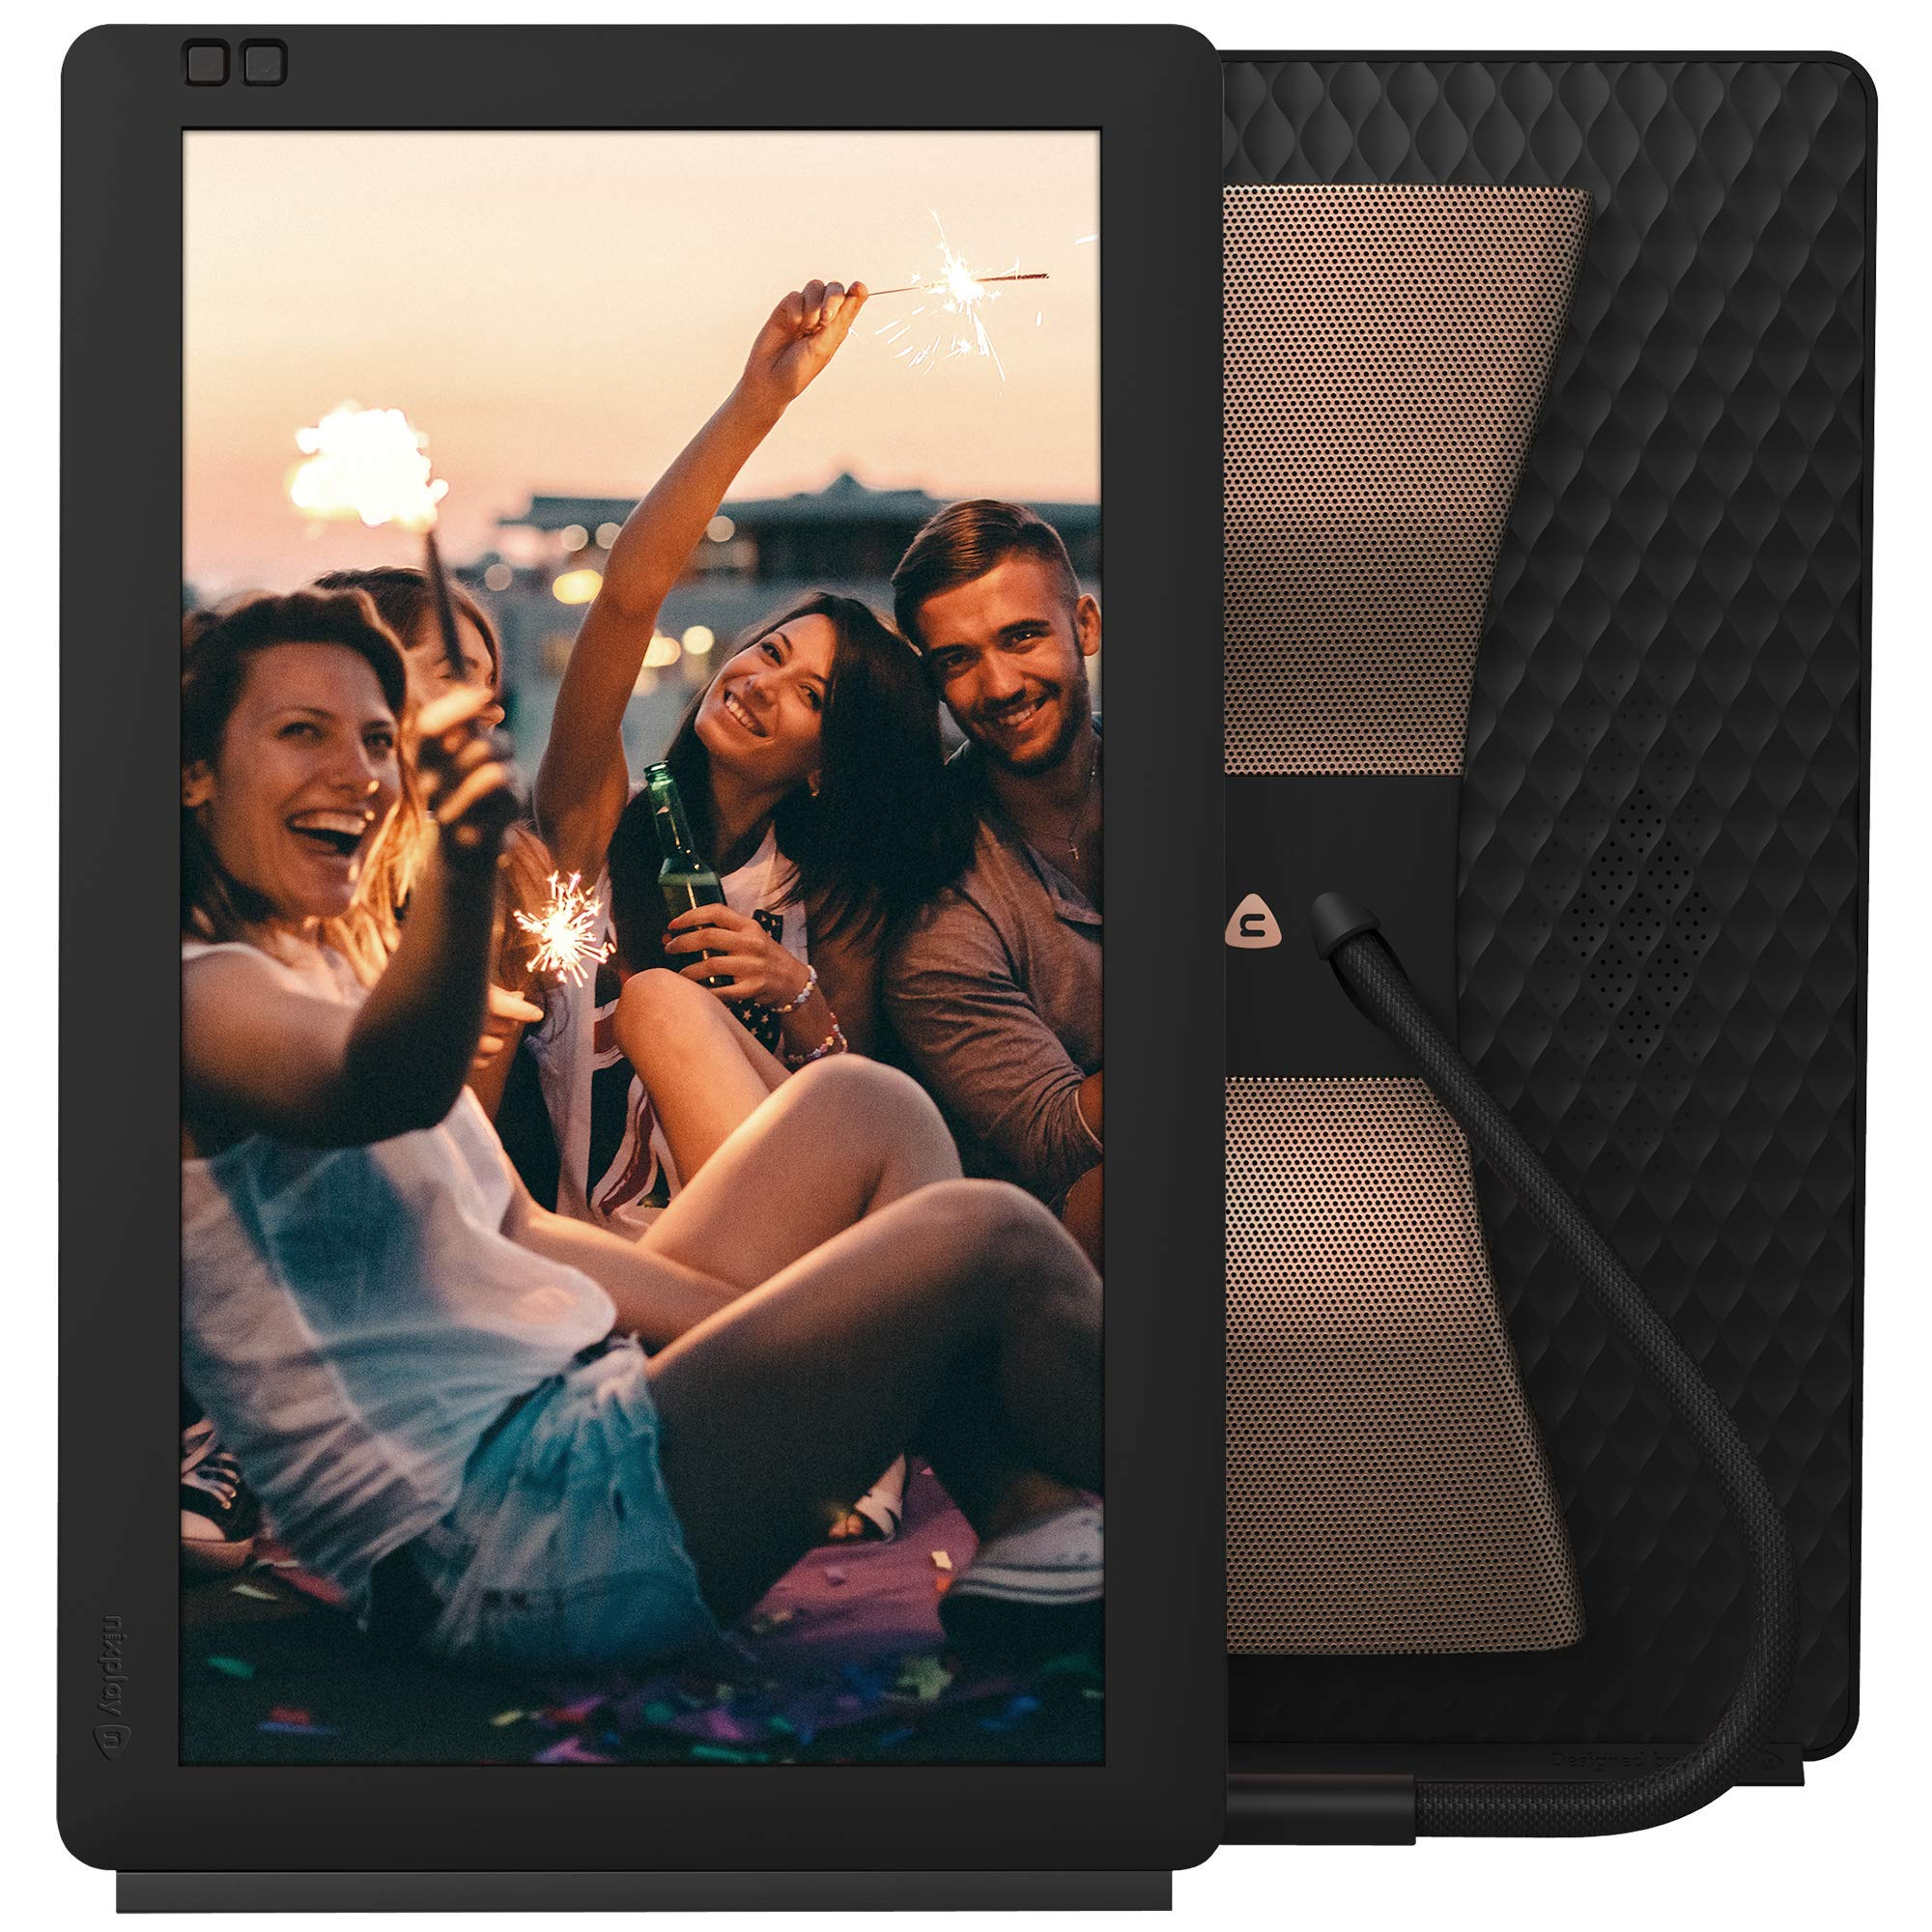 Nixplay Seed Wave 13.3 Inch WiFi Digital Picture Frame with Bluetooth Speakers - Share Moments Instantly via App or E-Mail